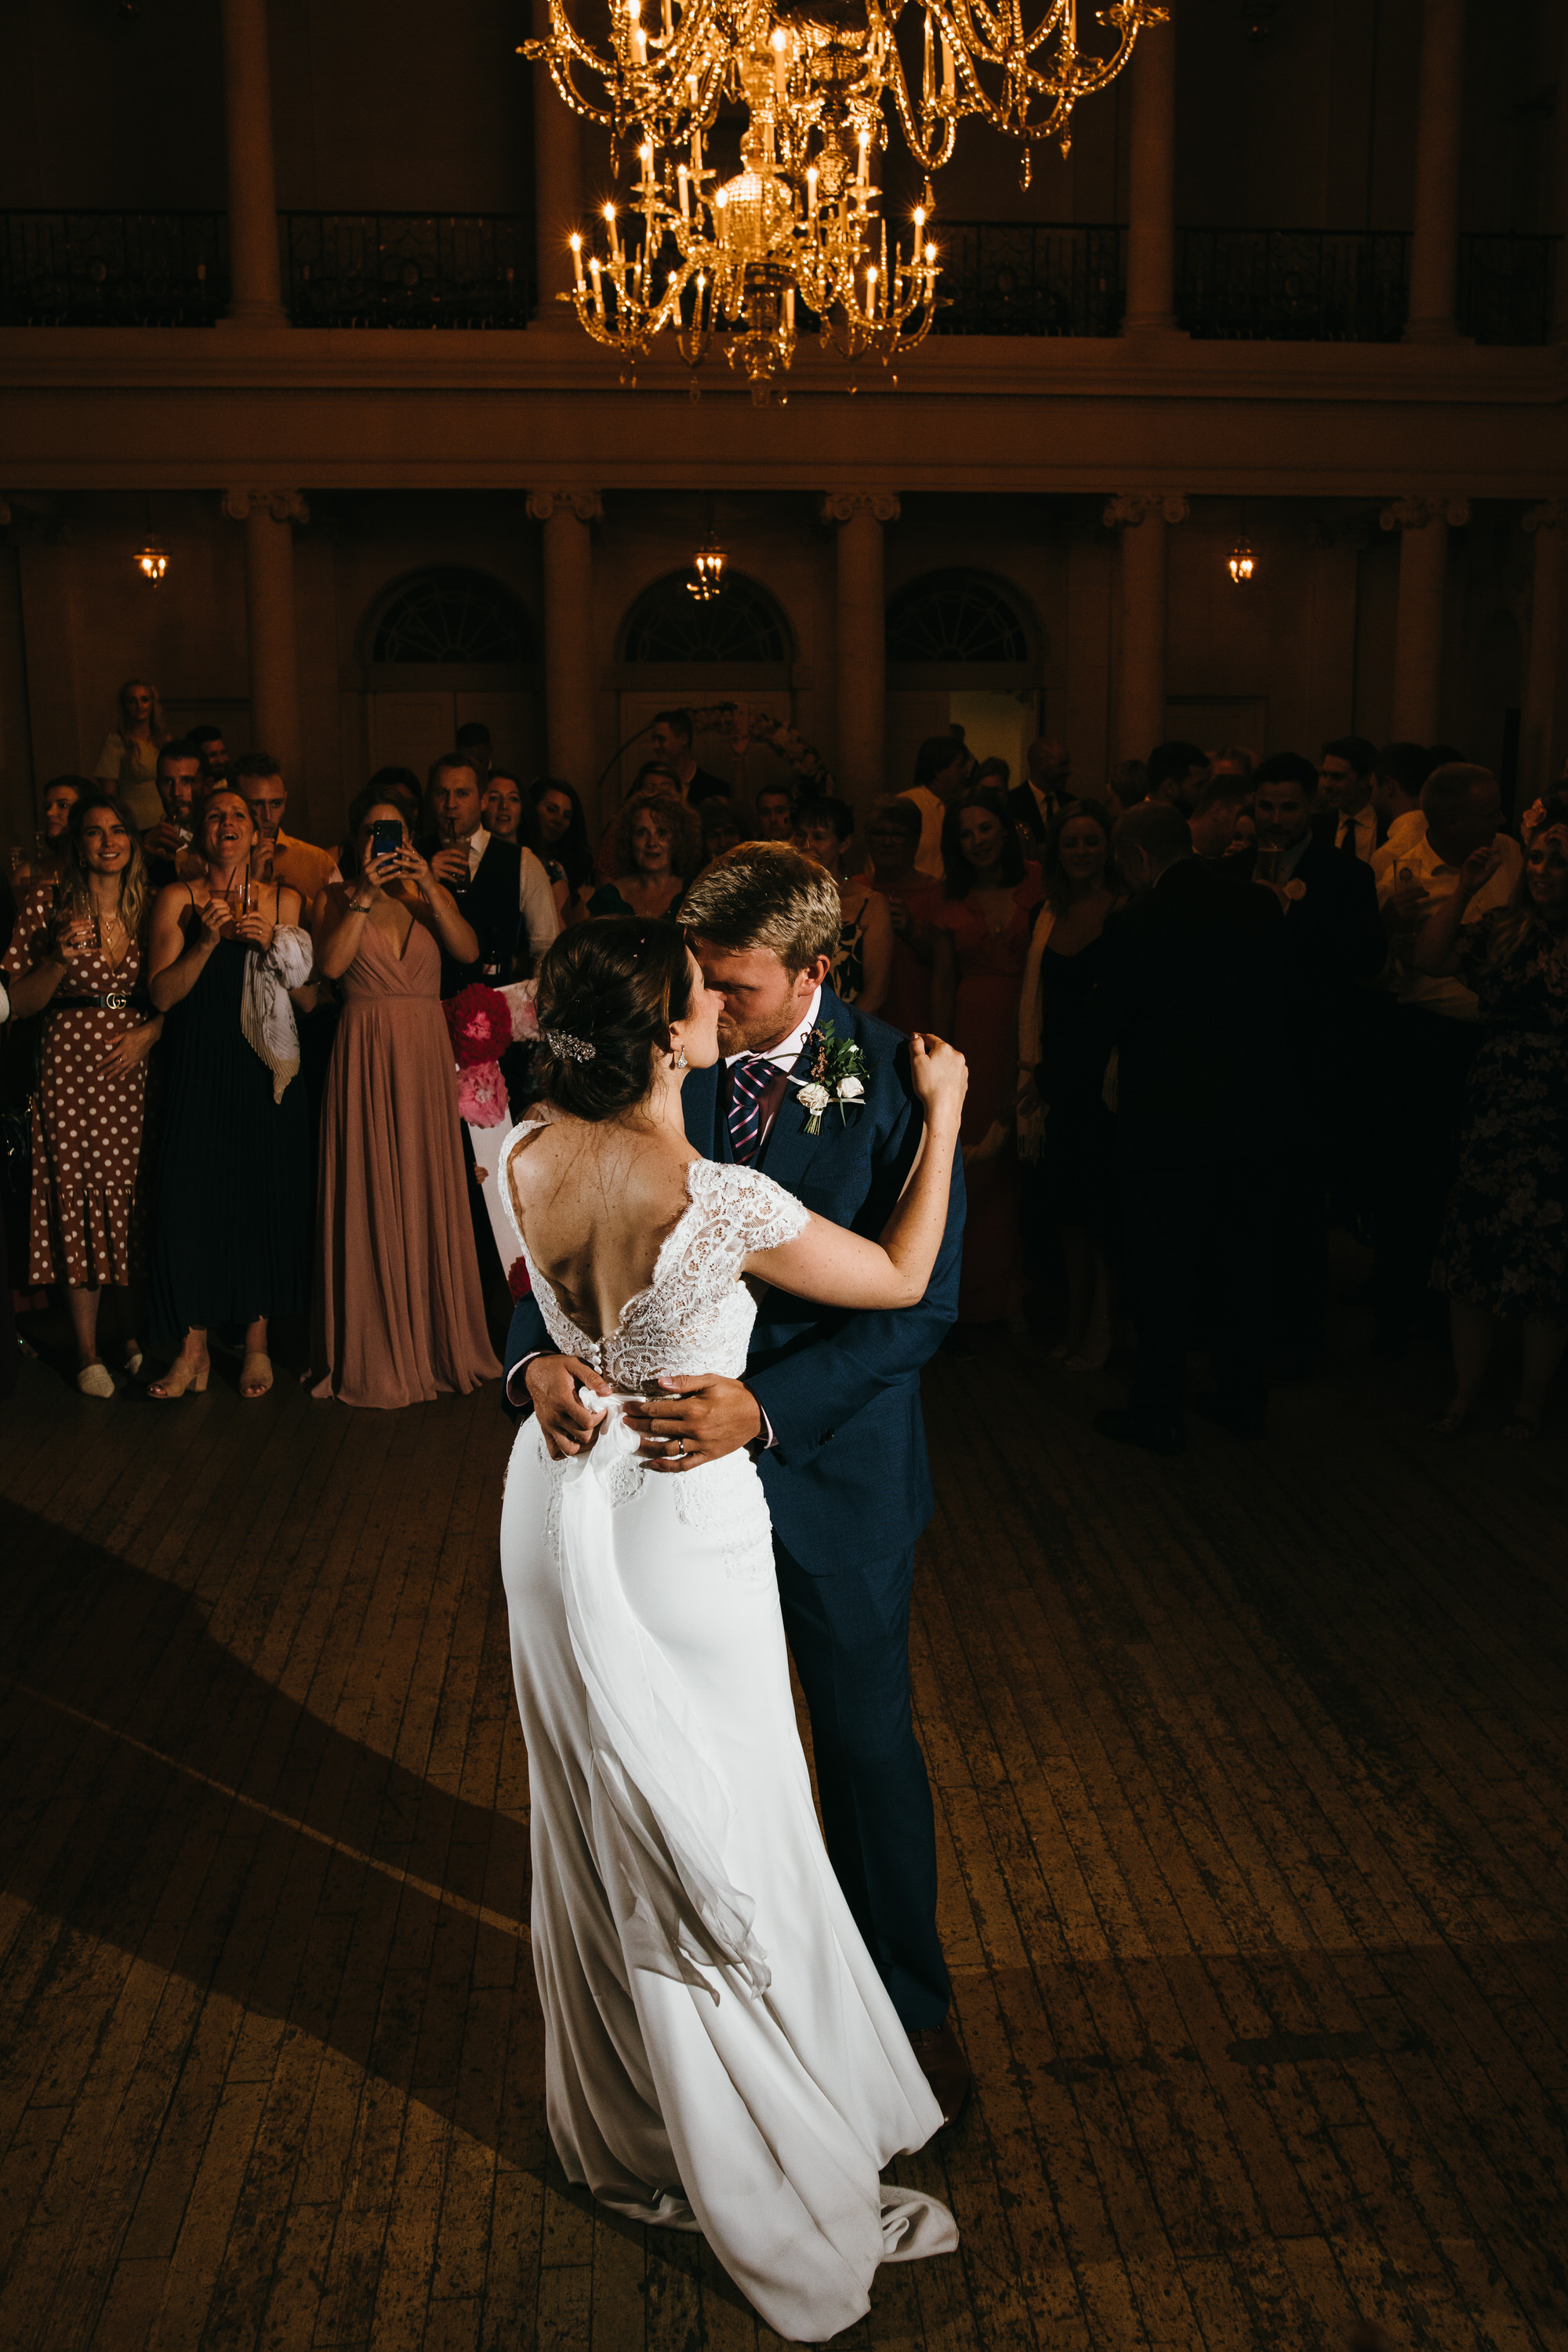 Assembly rooms bath wedding venue simon biffen photography 14